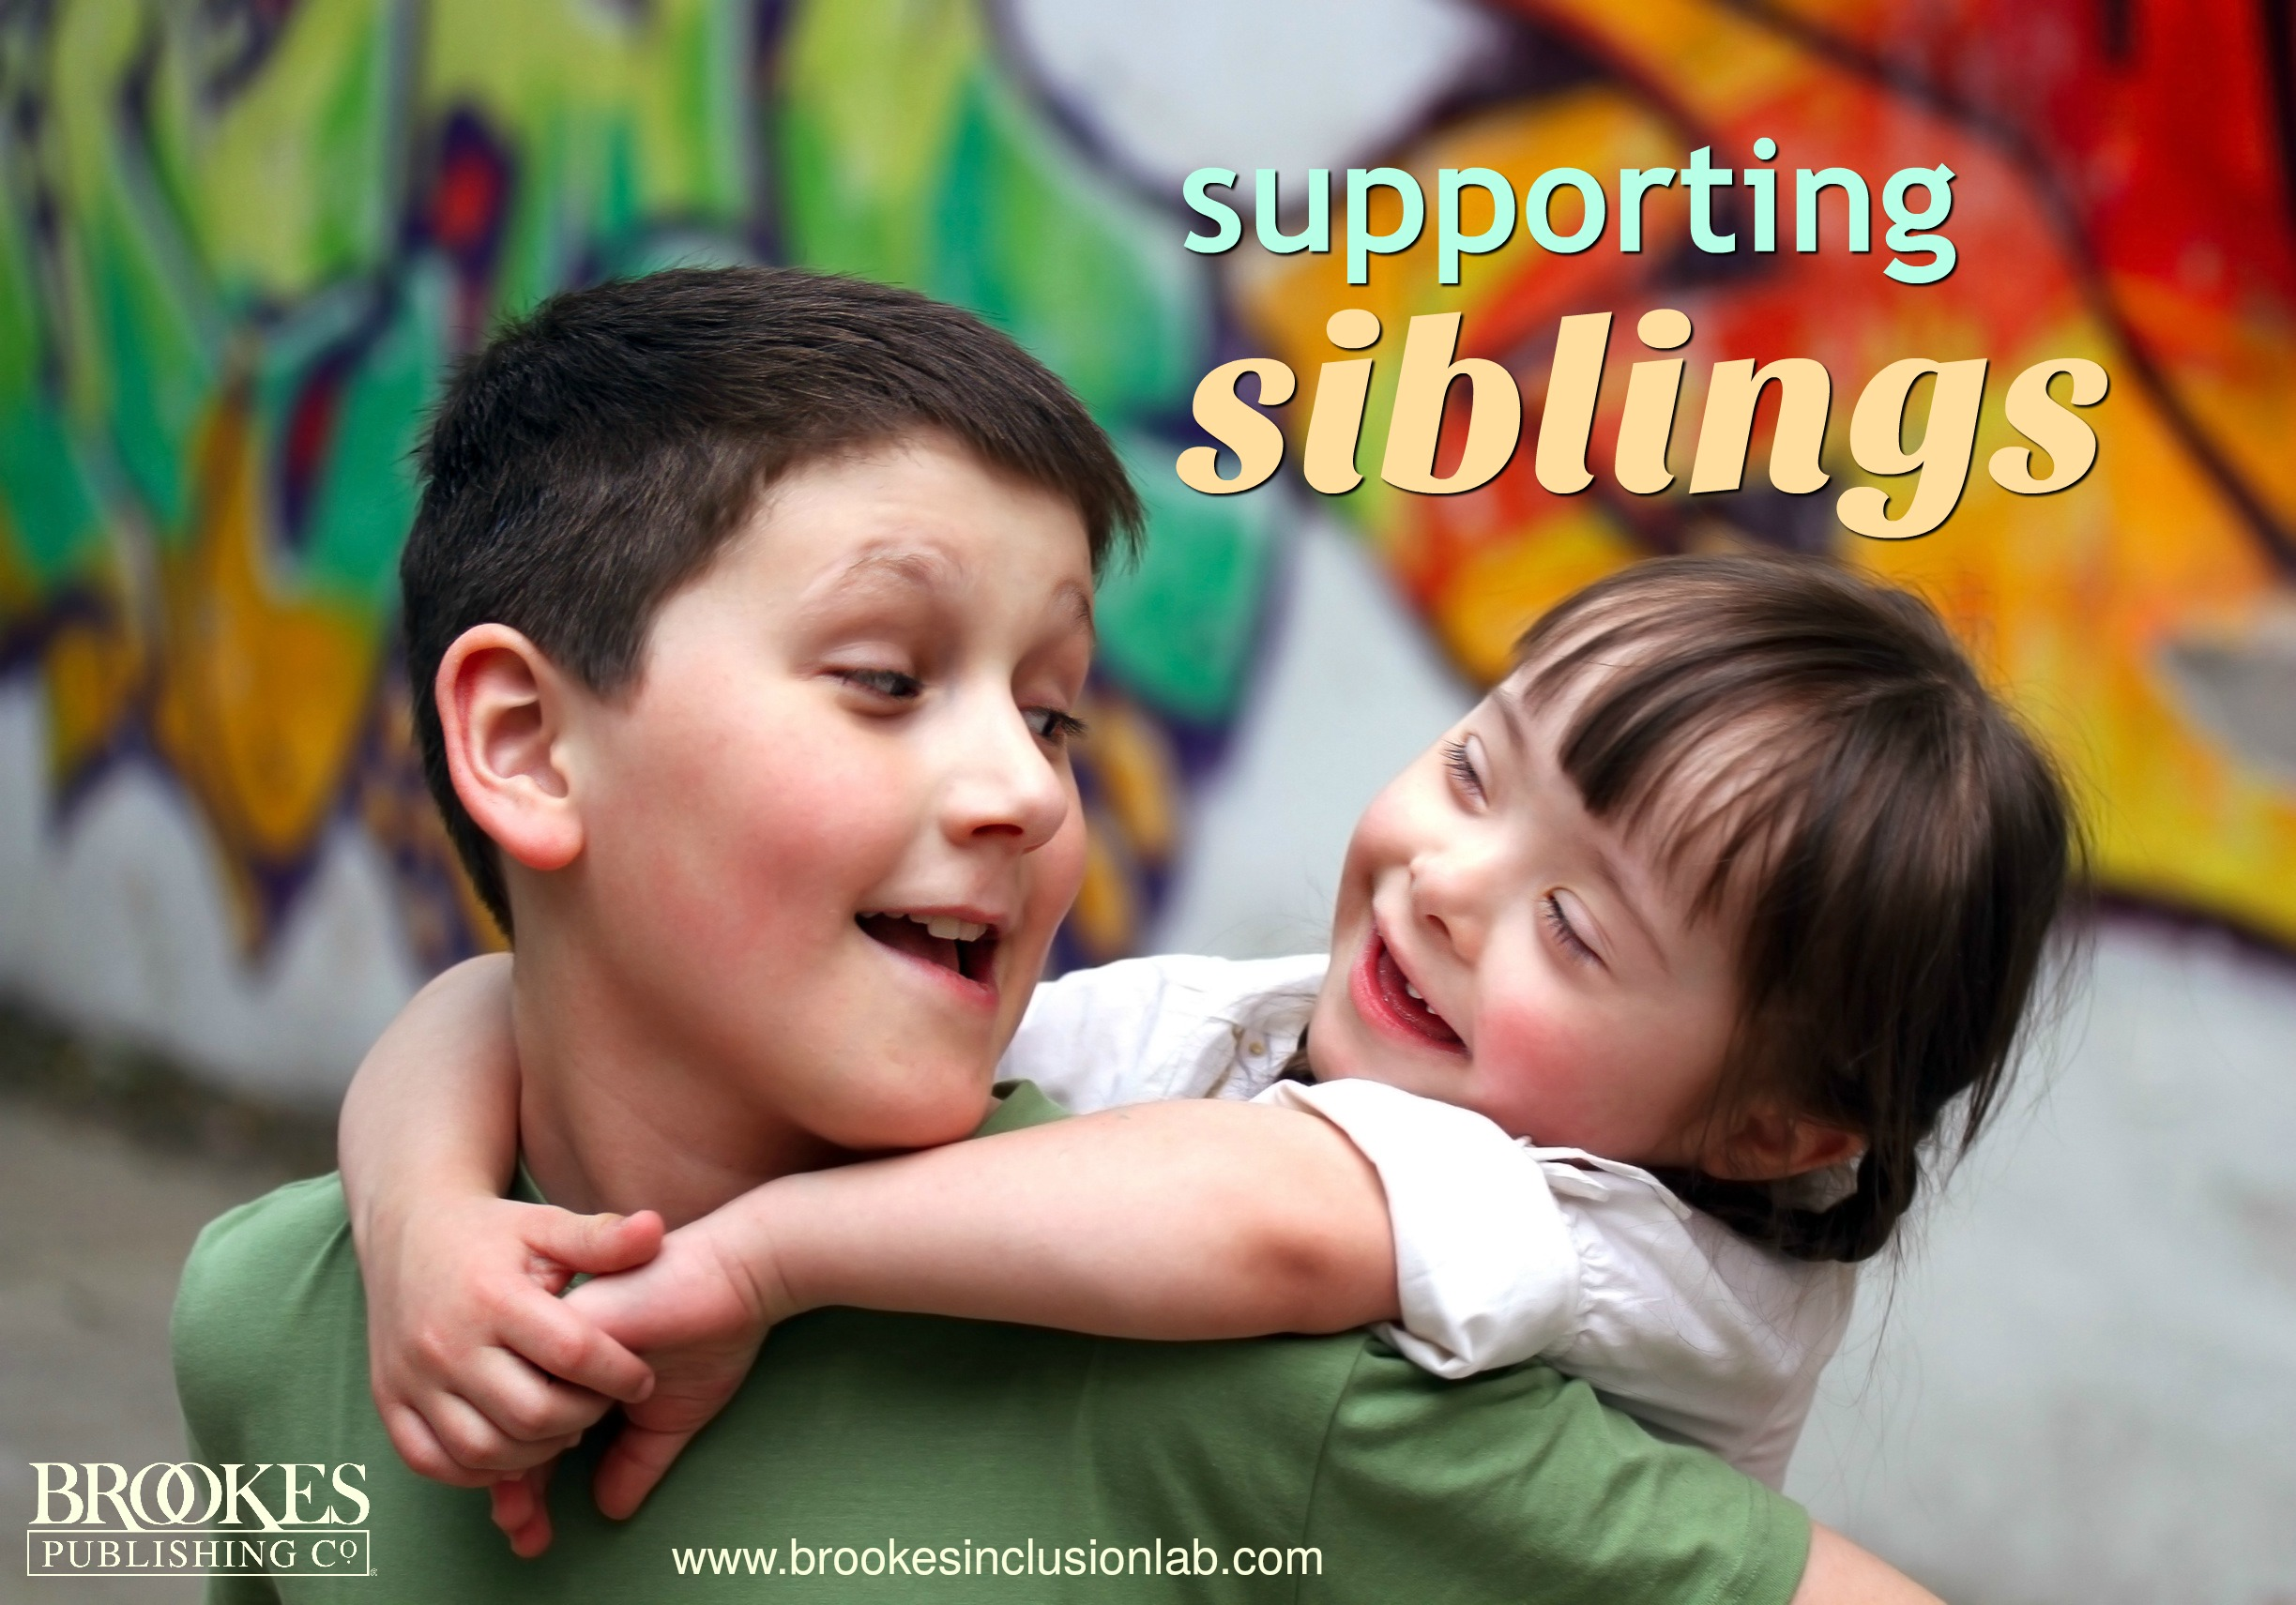 12 Ways to Support Siblings of Children with Disabilities